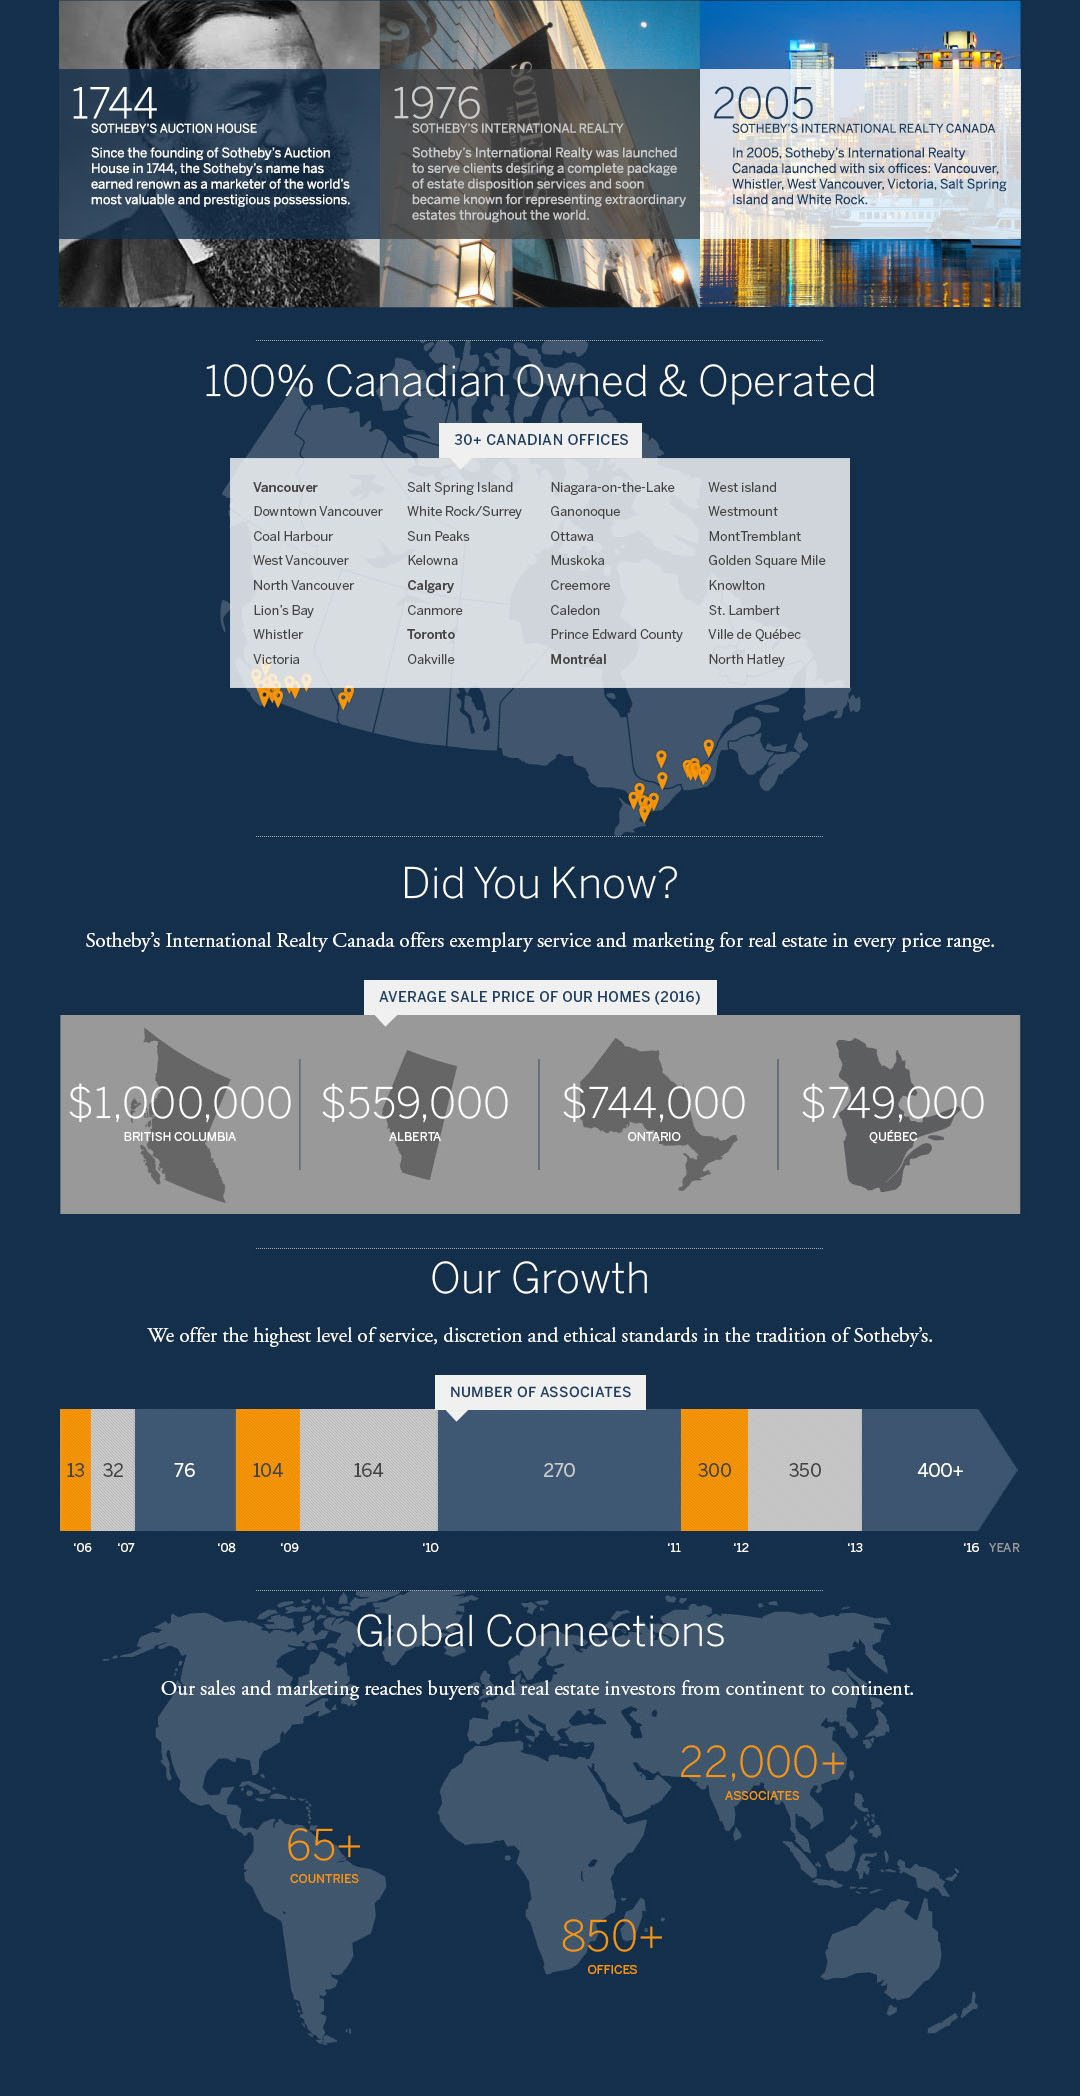 About Sothebys International Realty Canada